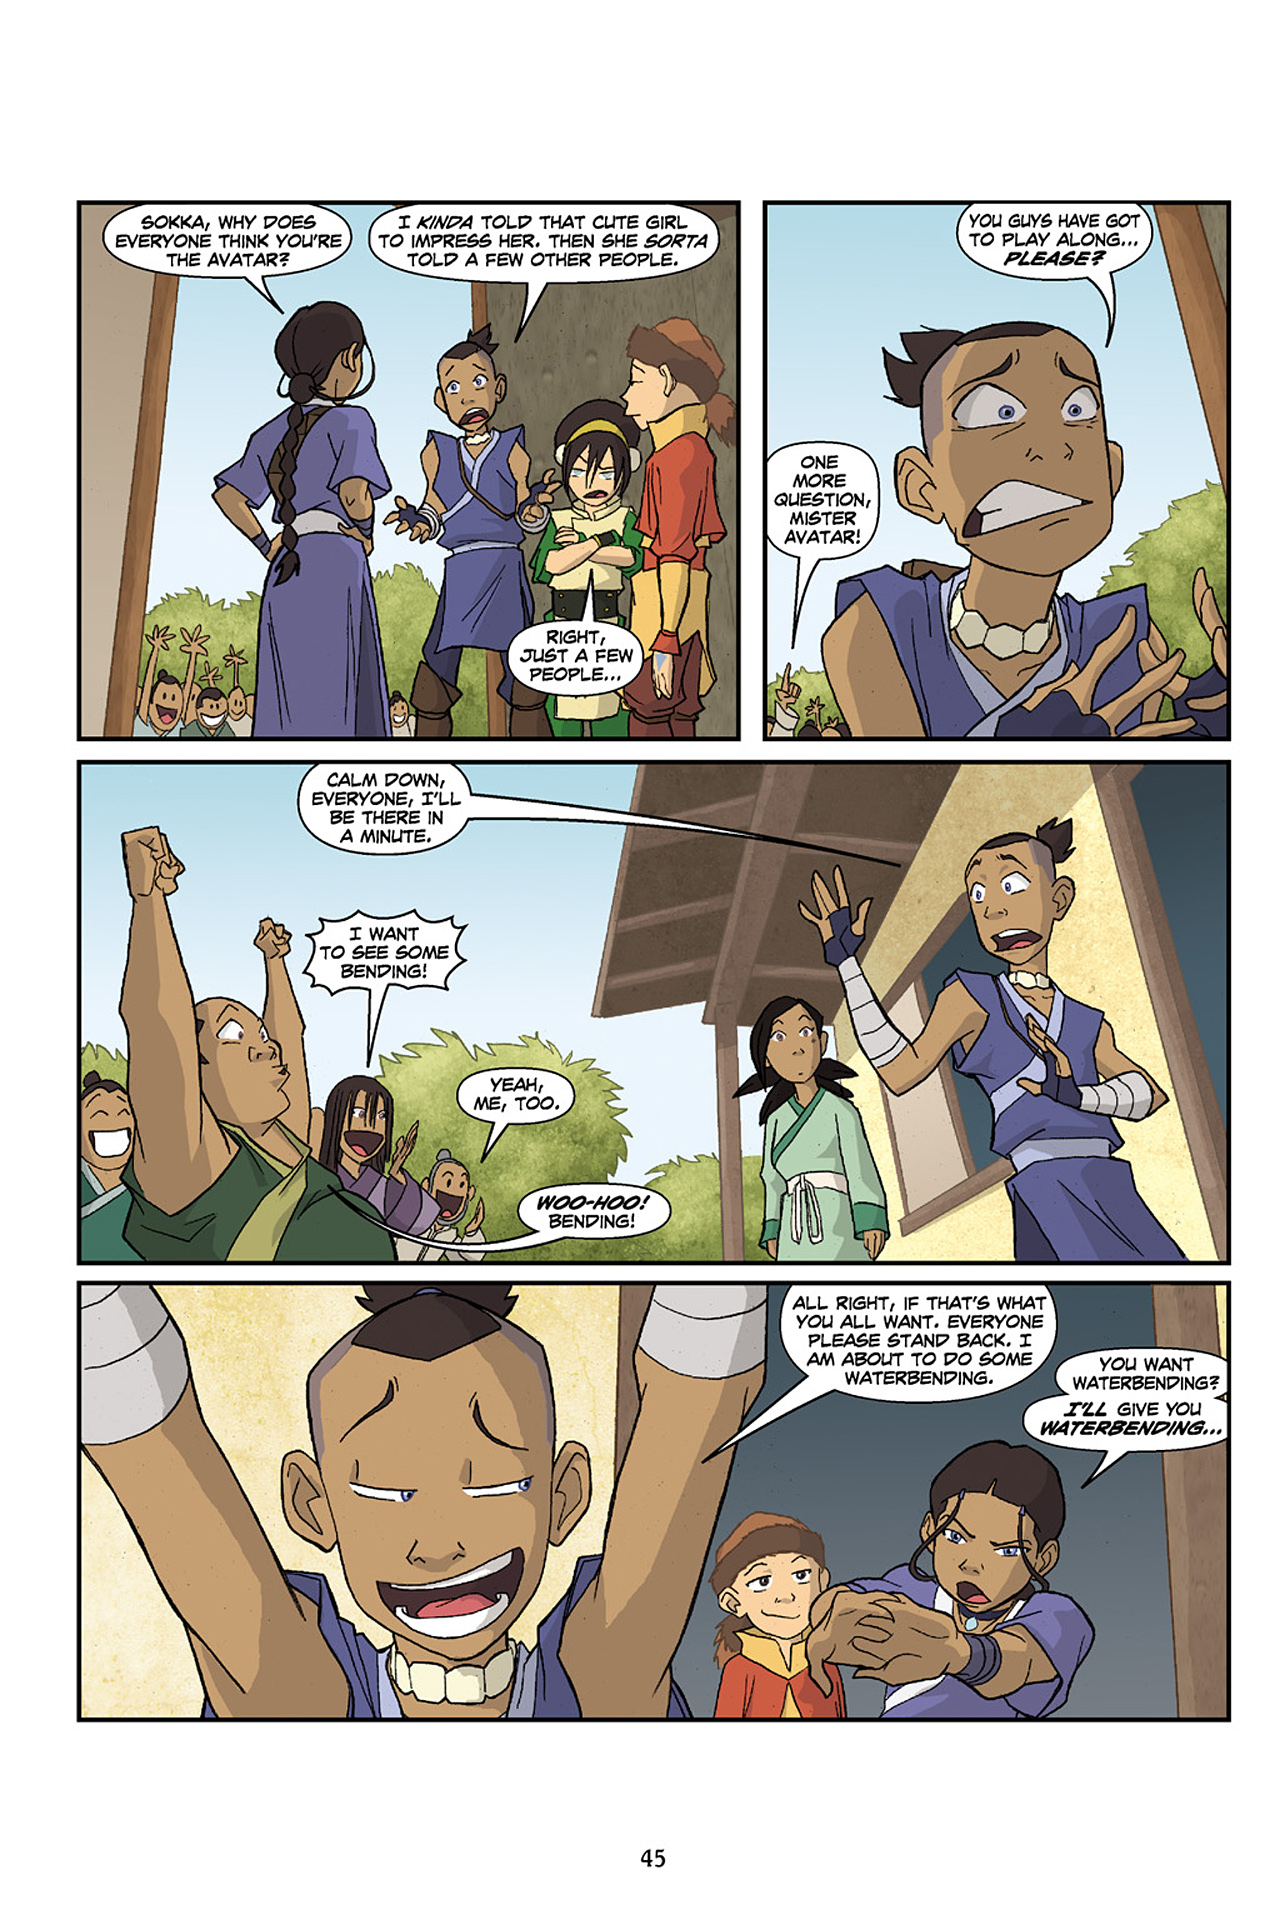 Nickelodeon Avatar: The Last Airbender - The Lost Adventures chap full pic 46